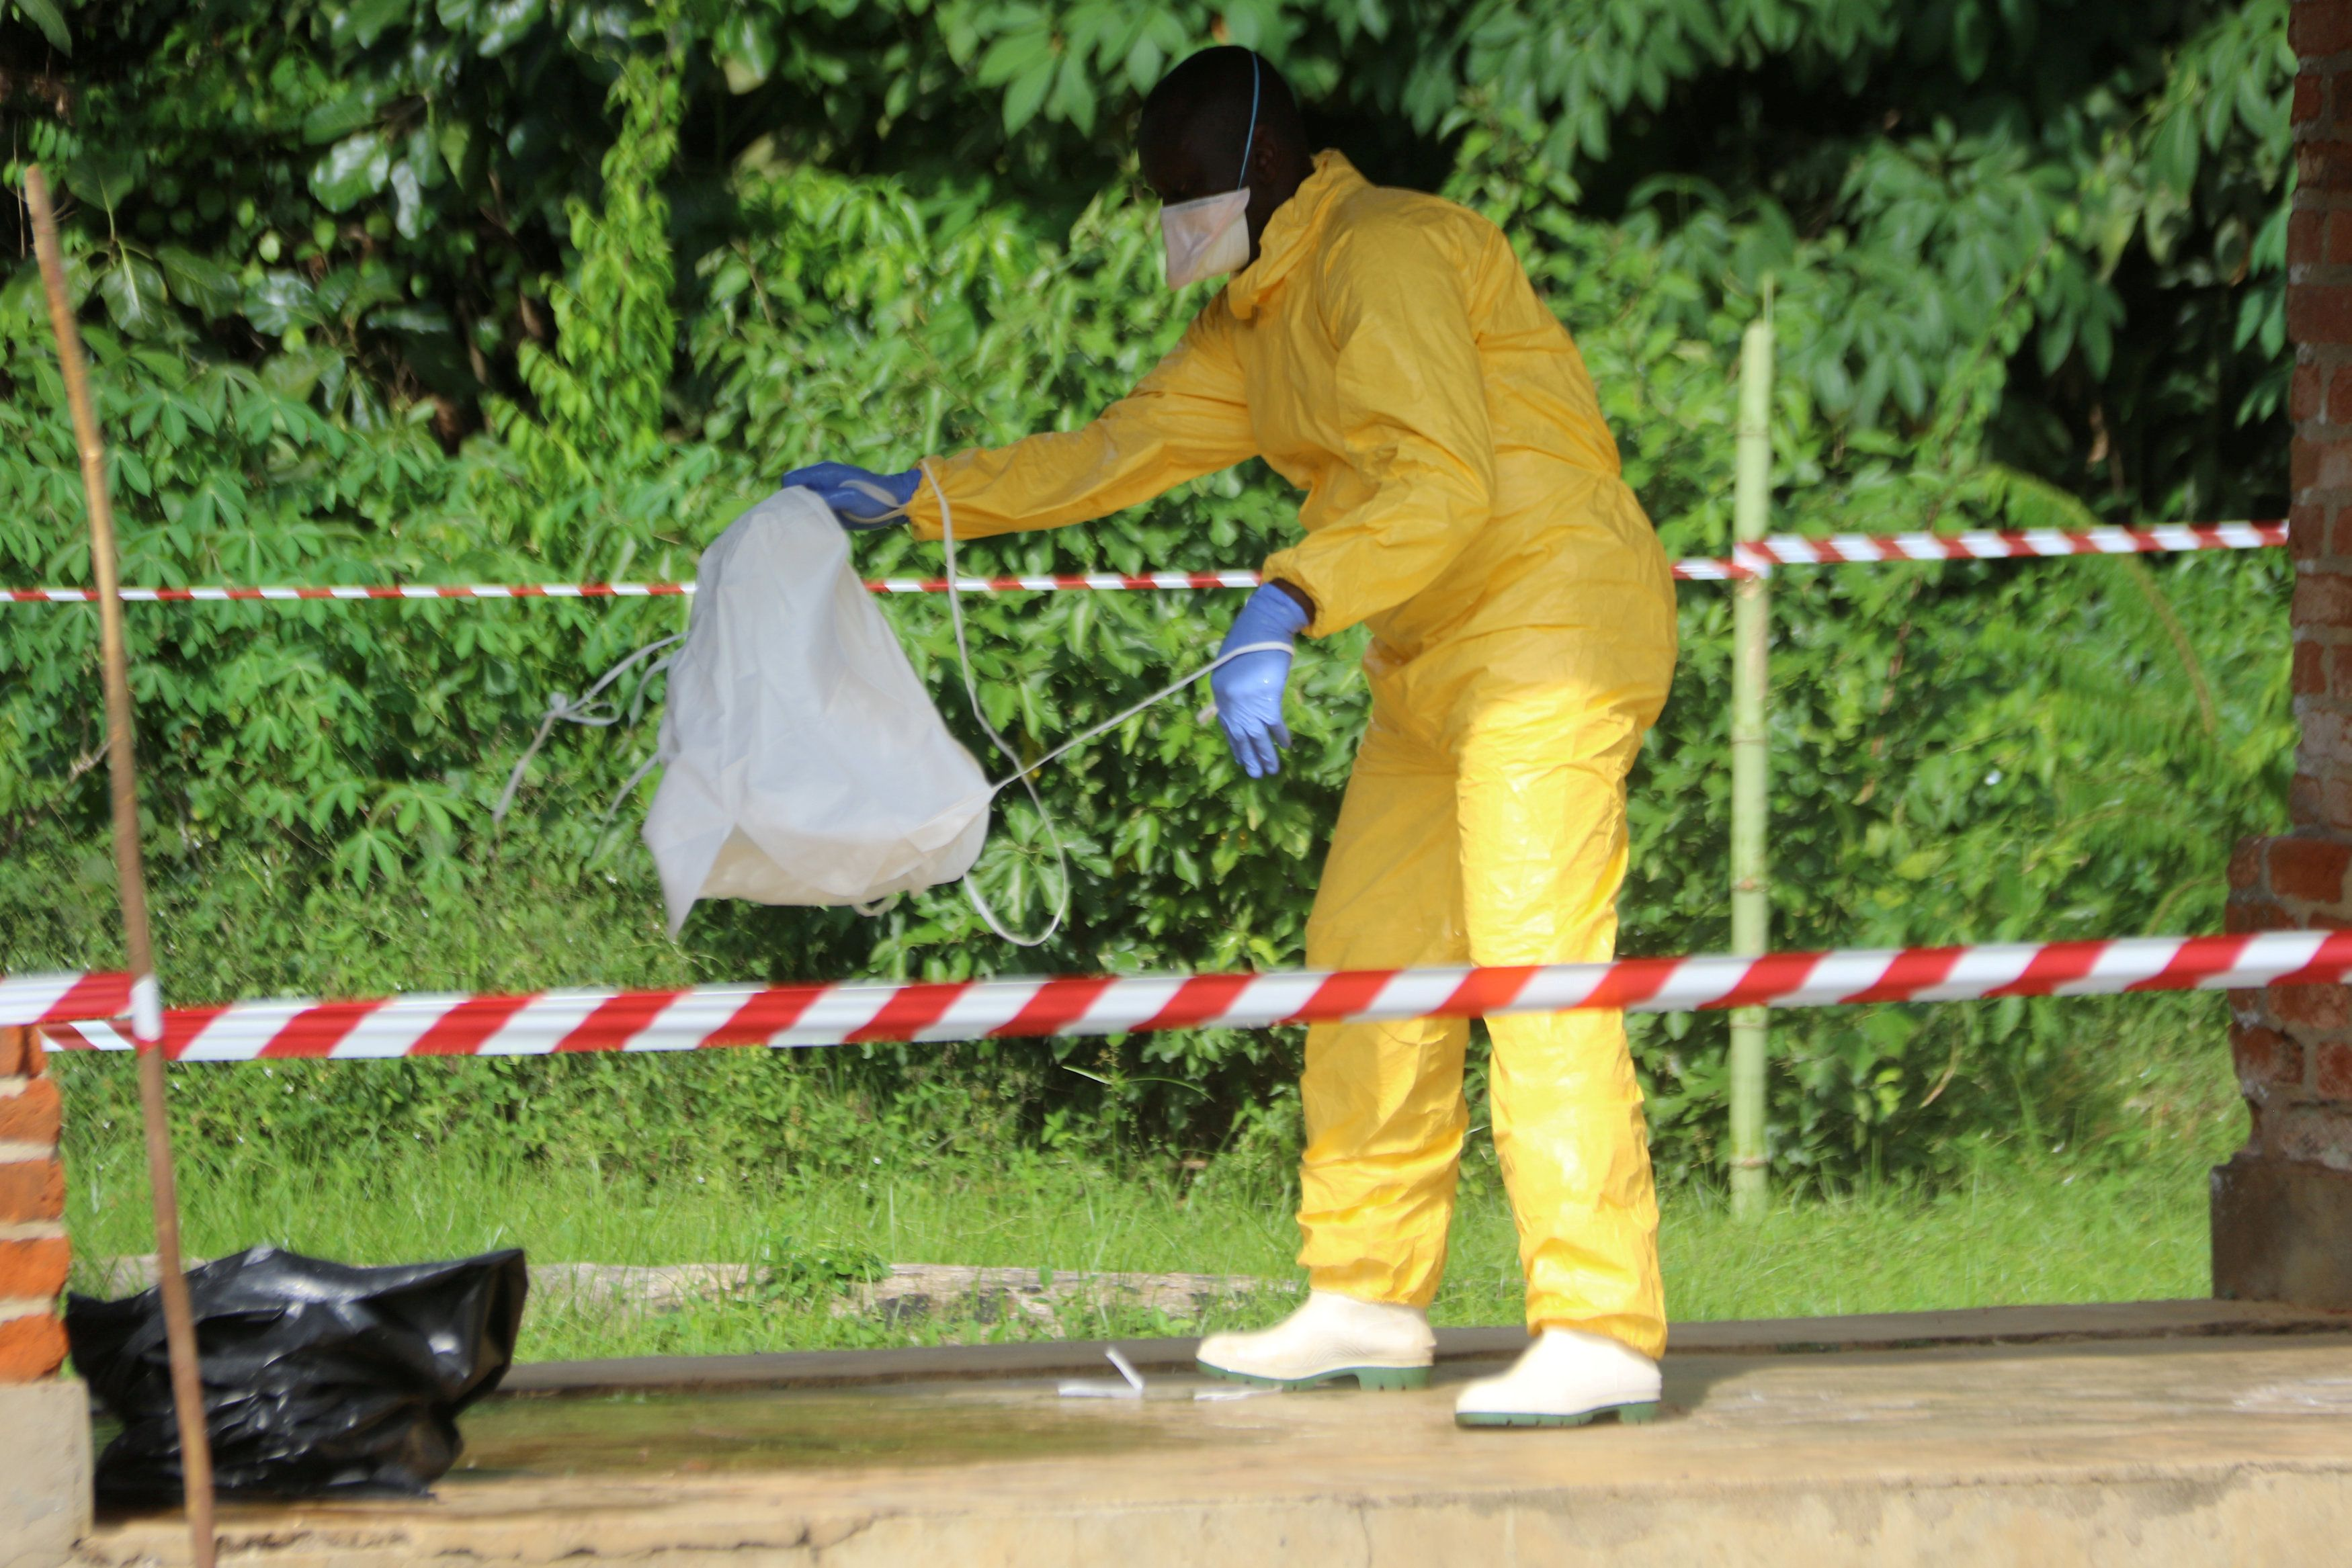 DR Congo Faces 'Very High' Risk From Ebola Outbreak As Virus Confirmed In Major City